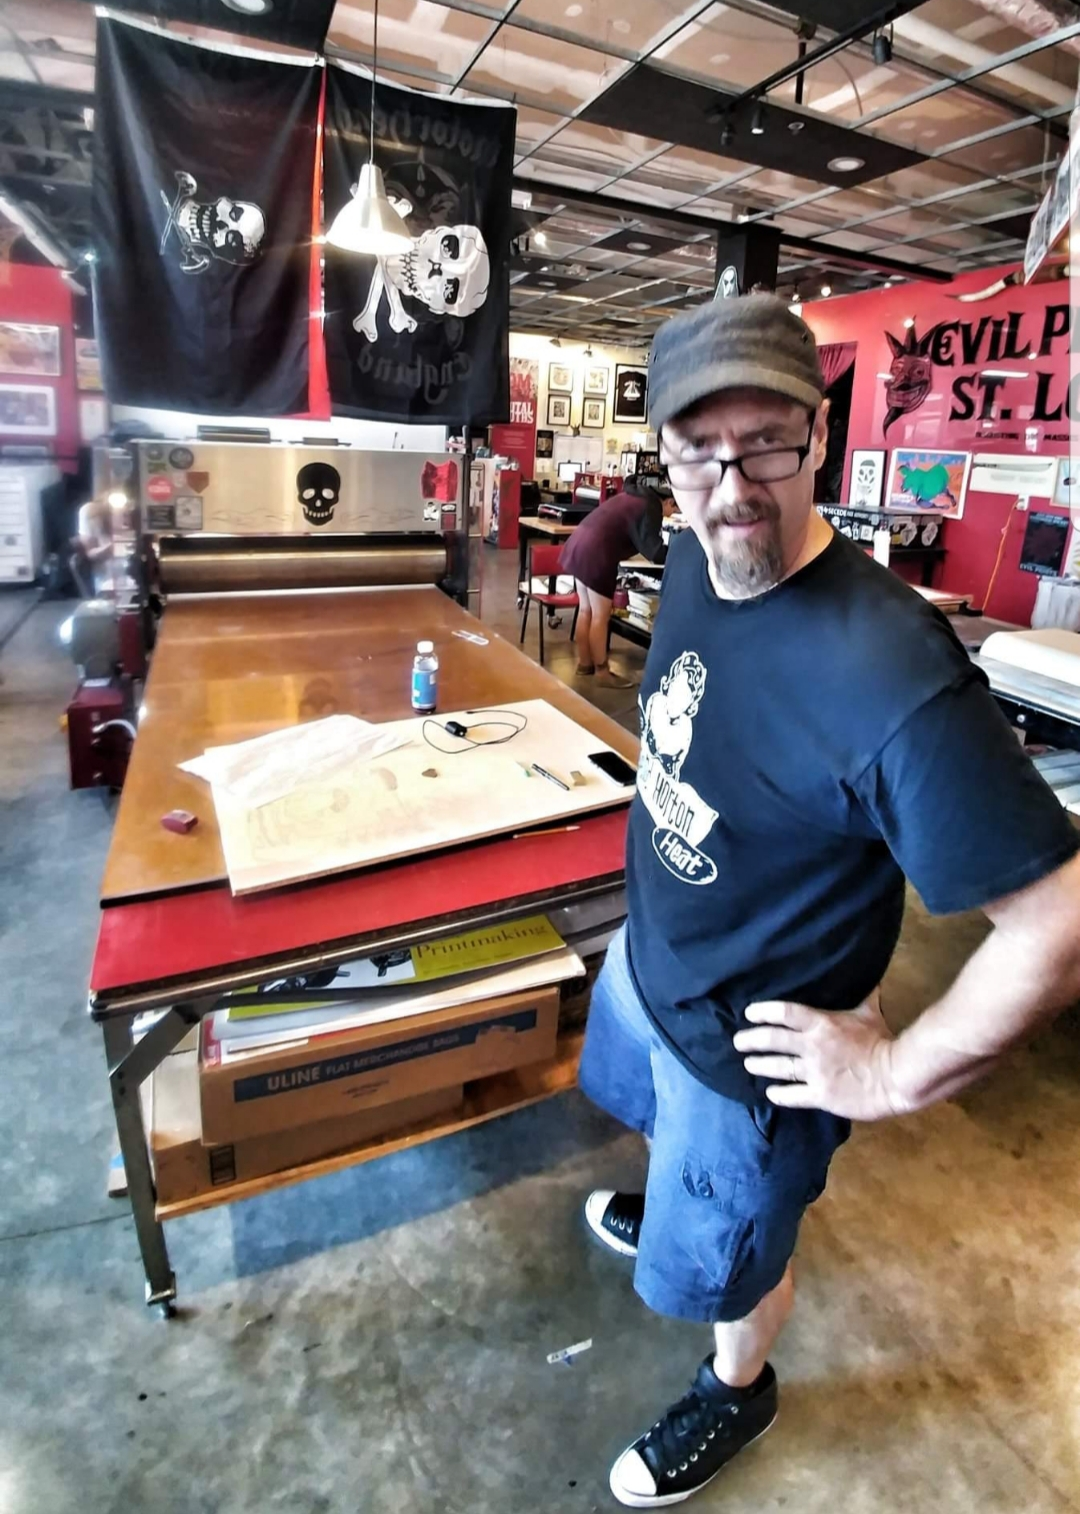 Here is a man ready to draw on the block. This would be my station (on the big press!) for the next several days. The gal in the background, Tricia, would later join me. Good thing too, as she is a carving wizard and taught me a few things. (Pic by Shannon Cousino)